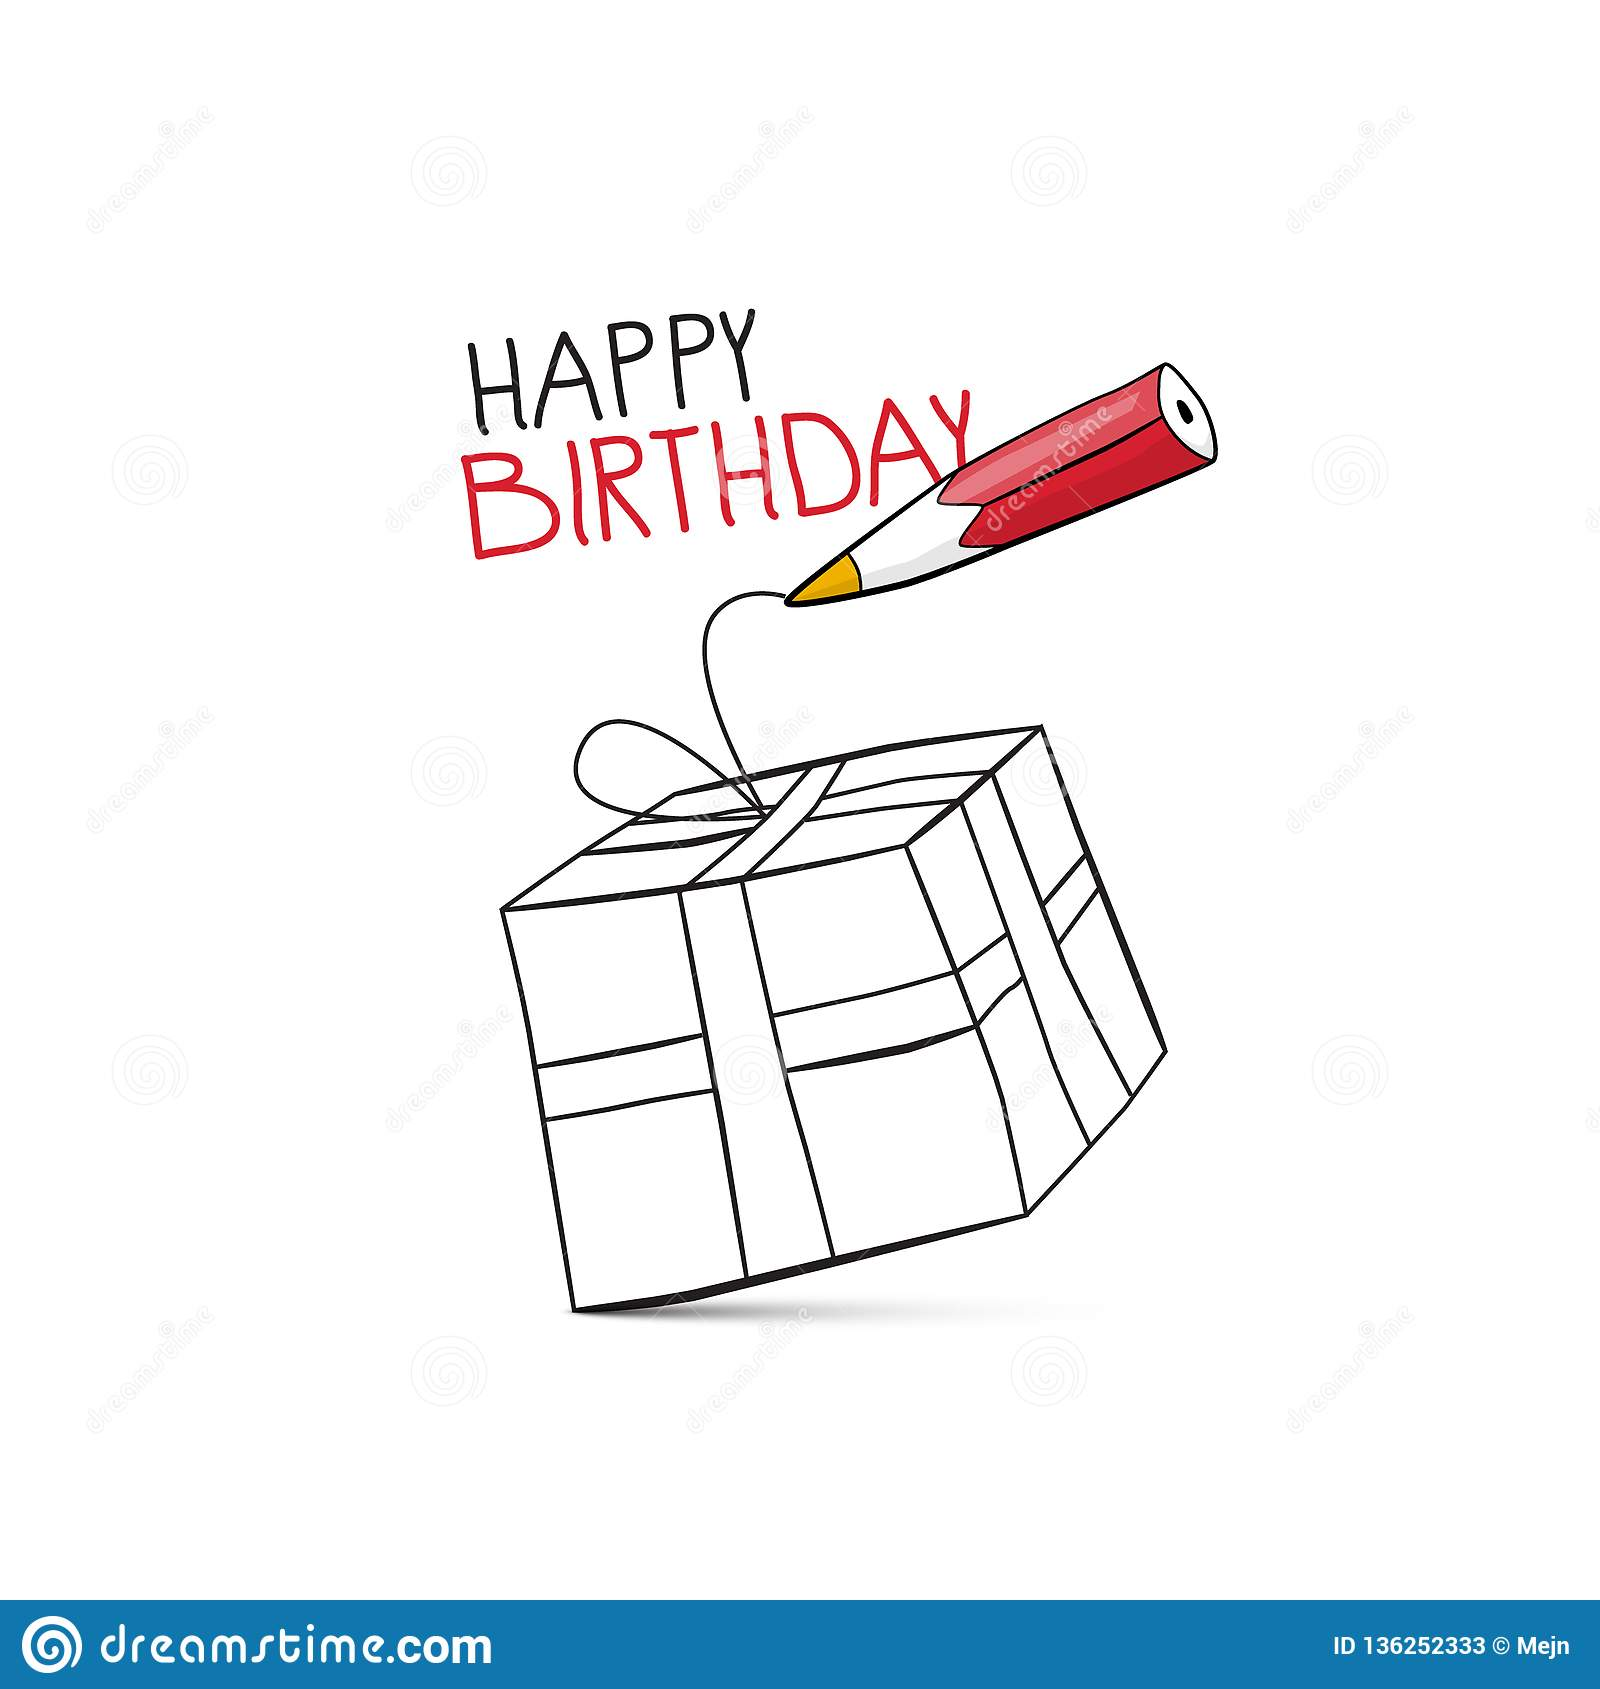 Happy birthday vector design with pencil and gift box stock vector